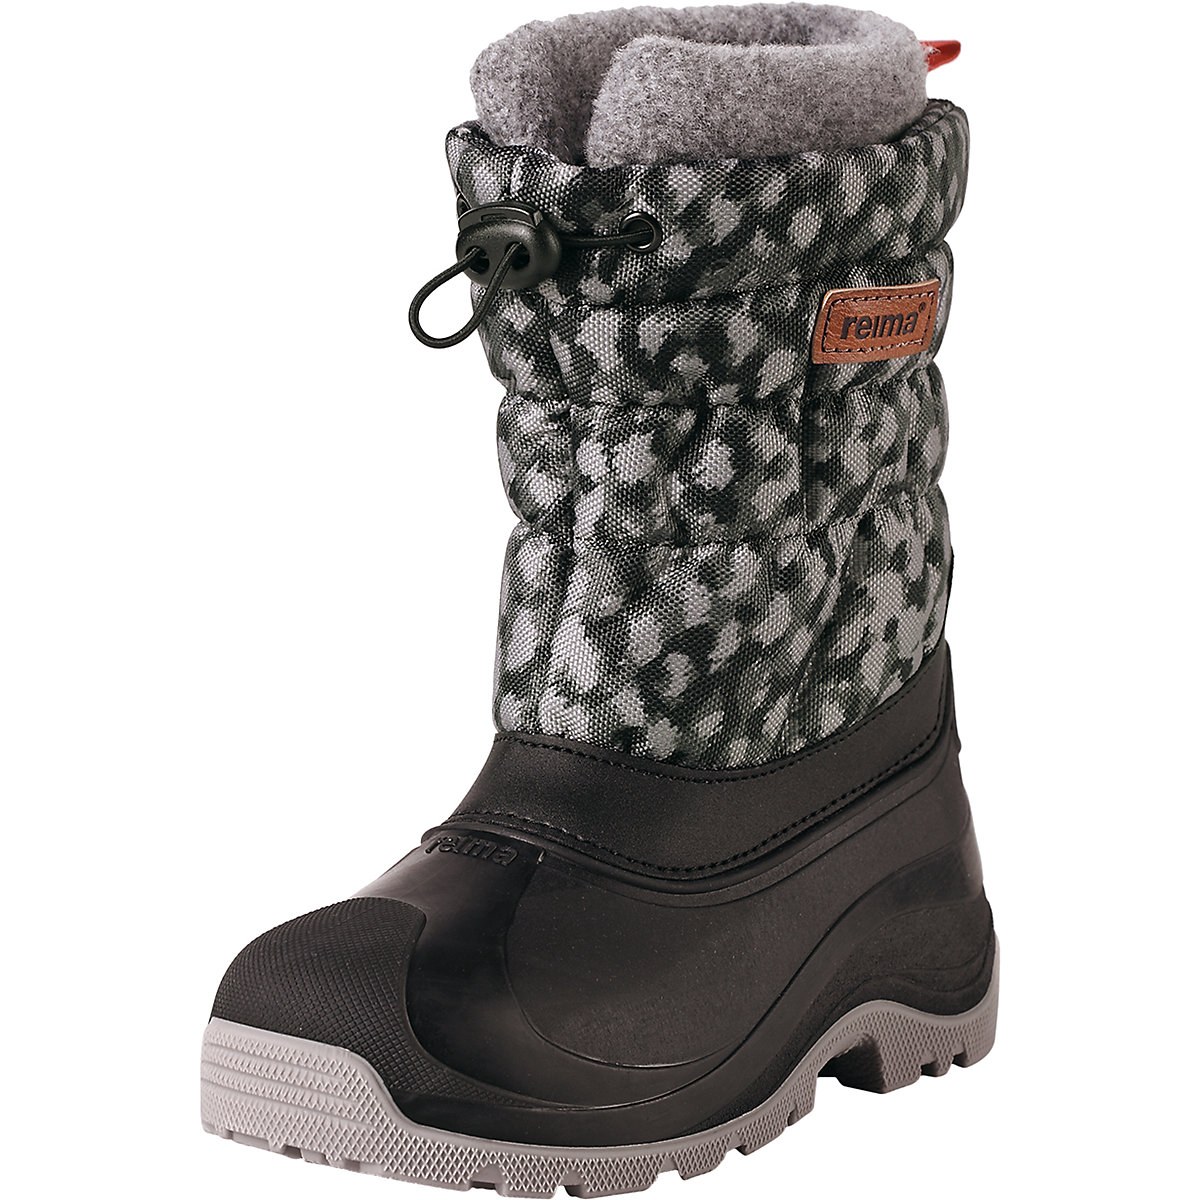 REIMA Boots 8624852 for boys winter boy baby shoes reima boots 8624963 for boys winter boy baby shoes